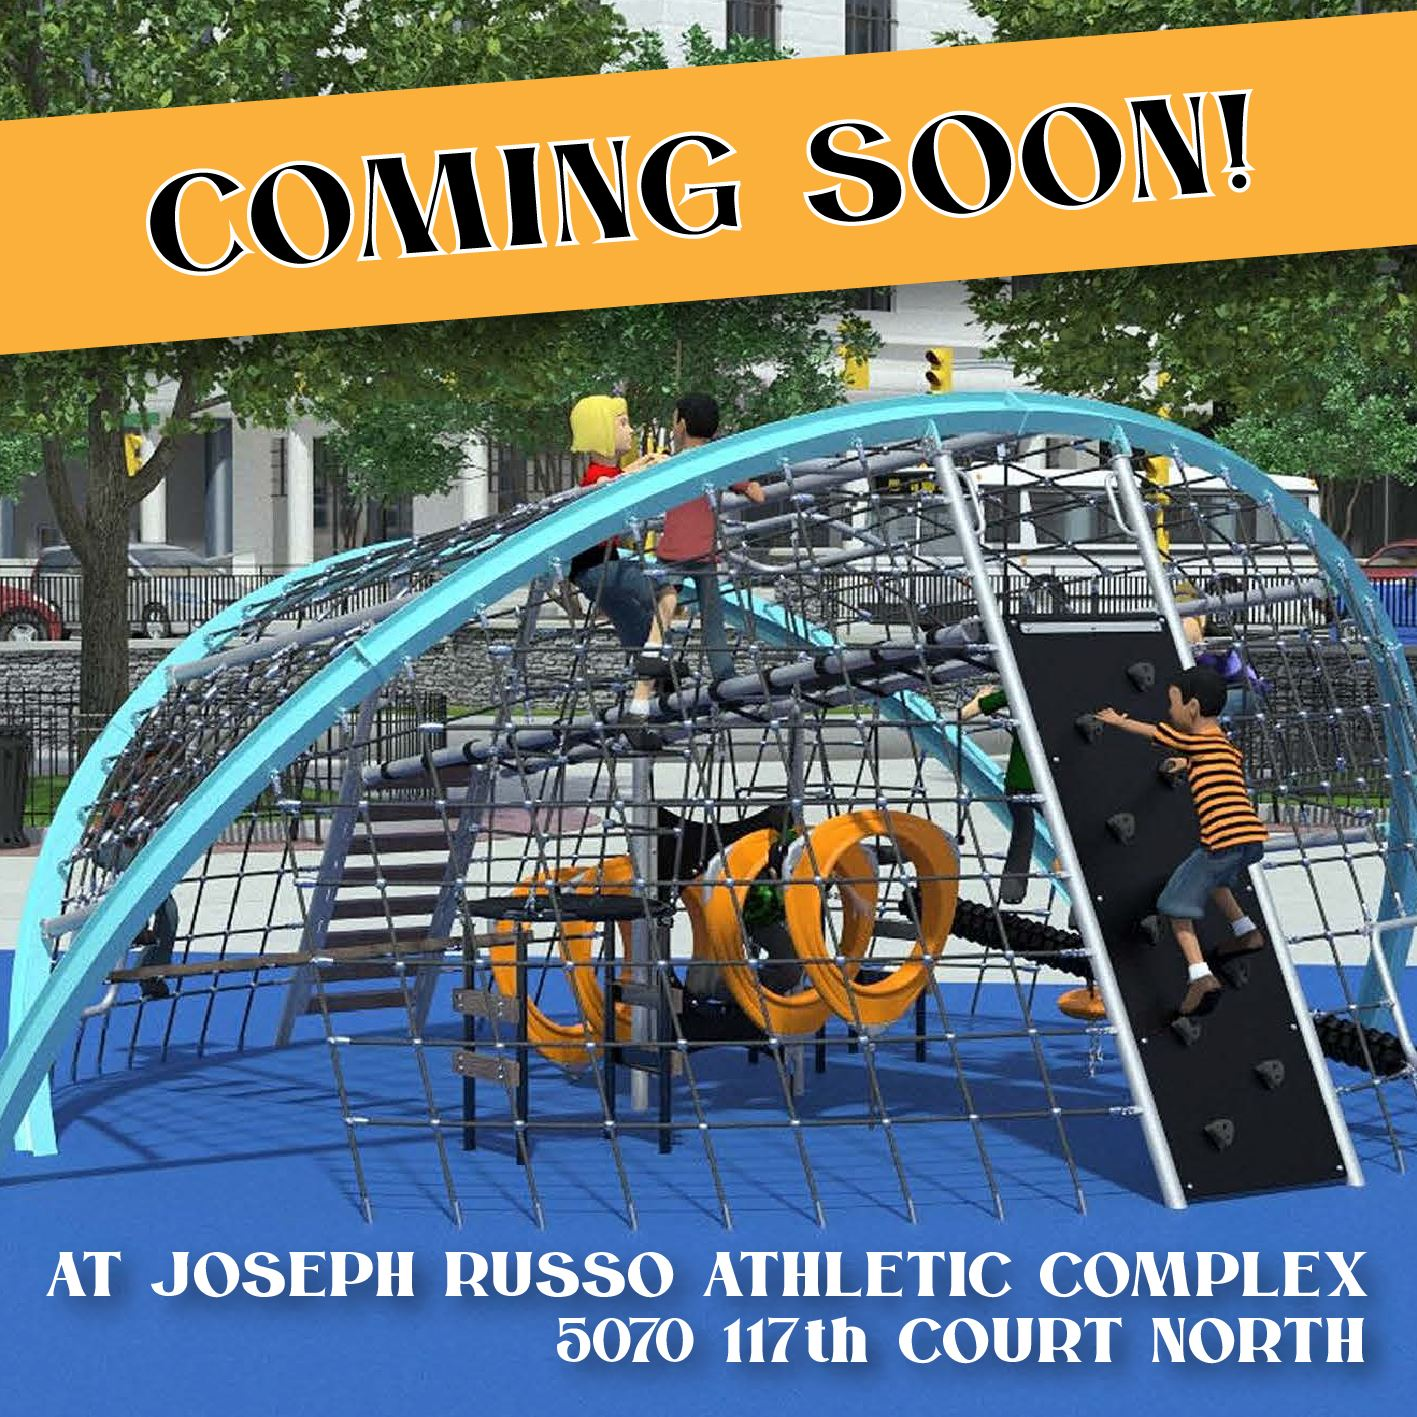 ?Beginning March 13th, the playground located at Joseph Russo Athletic Complex (5070 117th Court Nor